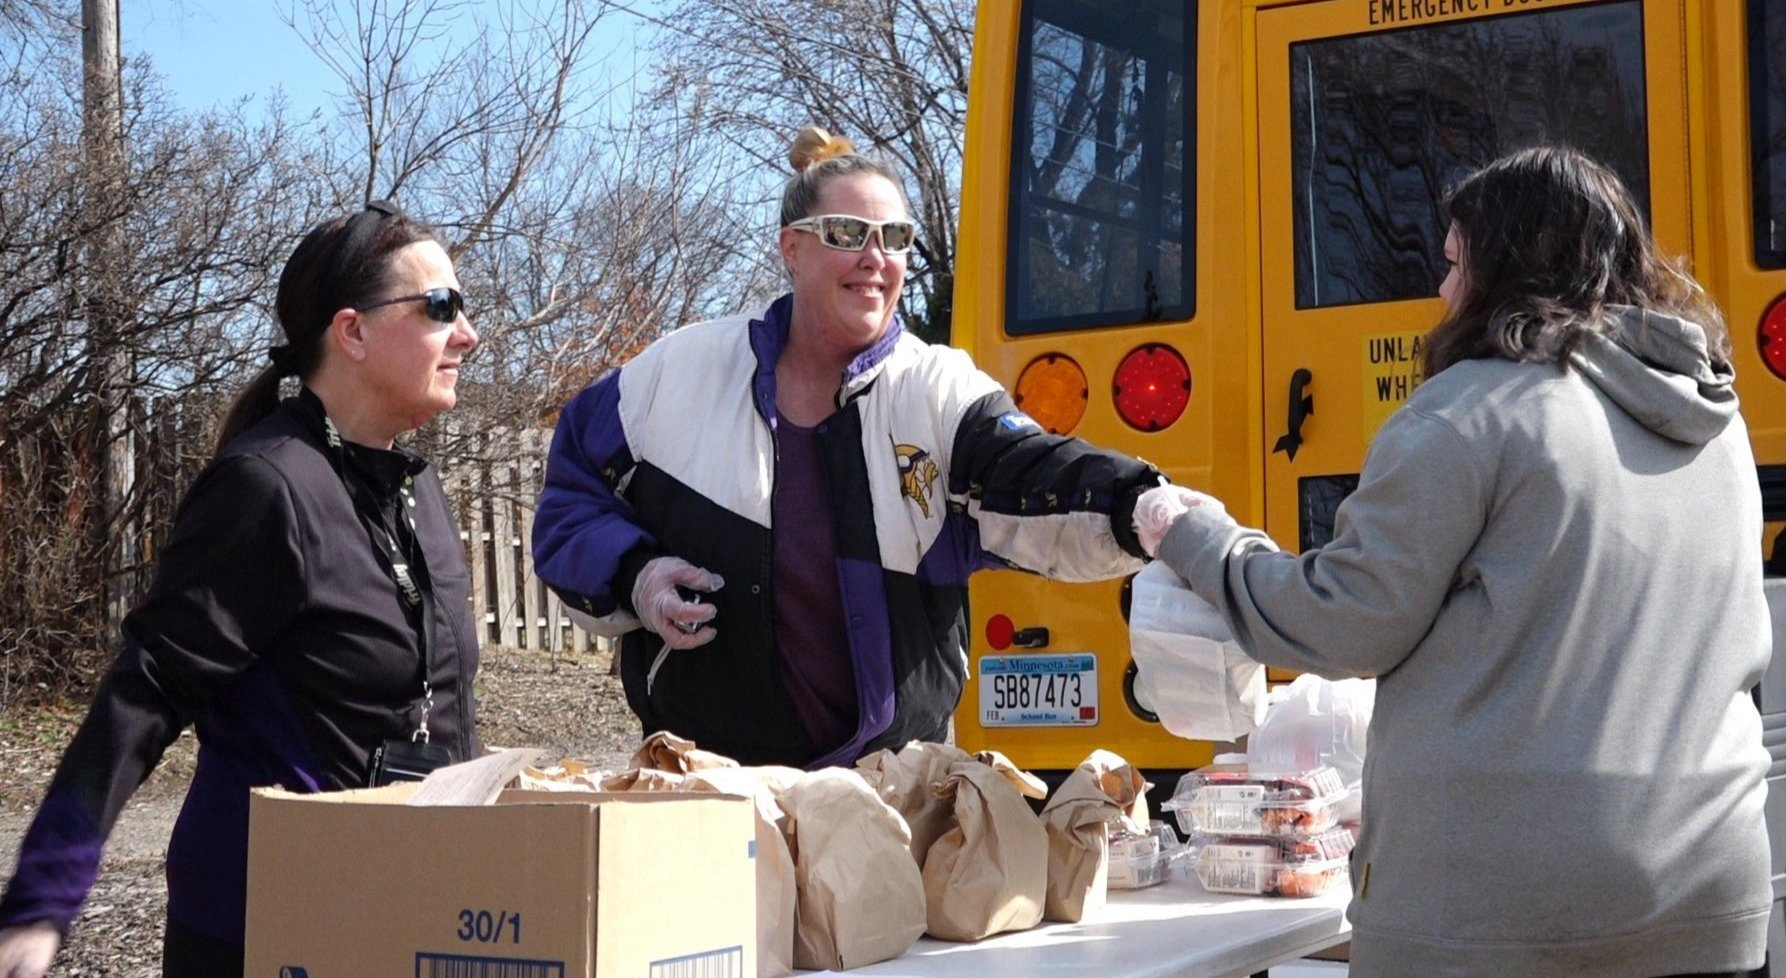 Nutritional Services staff handing out grab-and-go meals